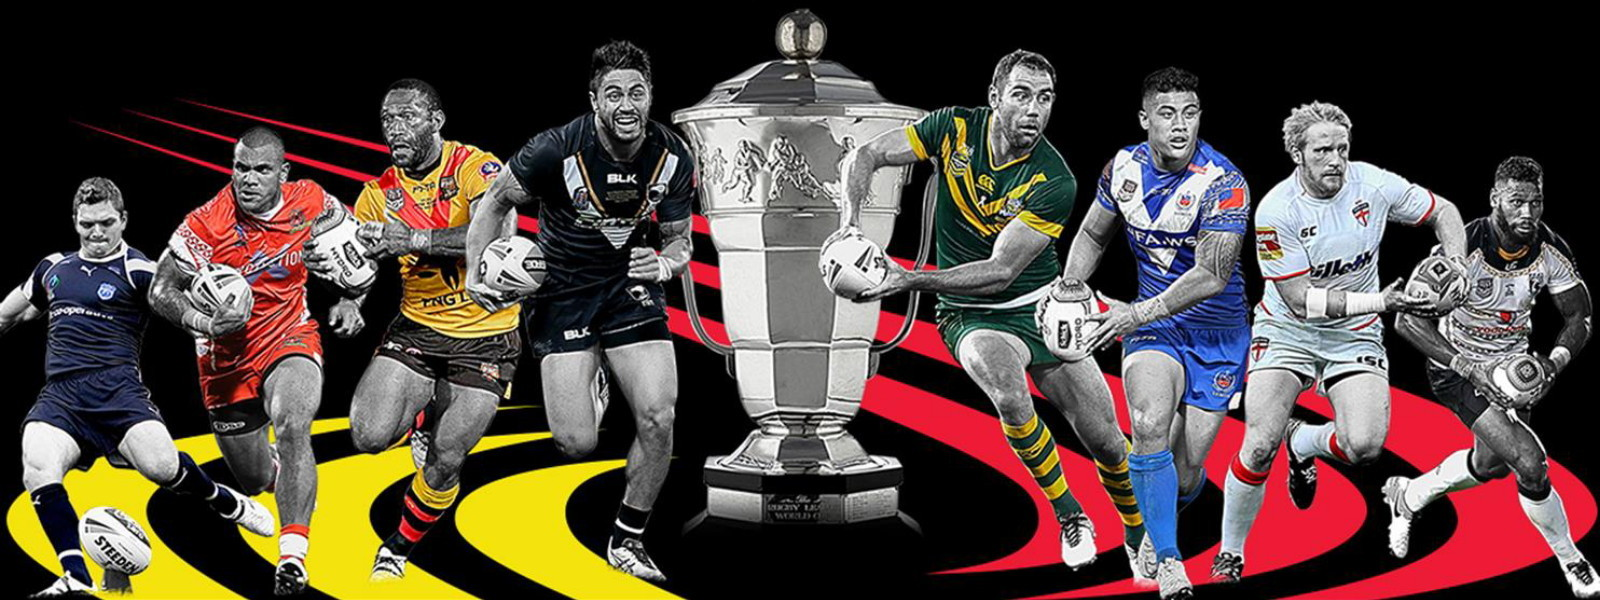 https://www.brassmonkeytaipei.com/site-content/8-home/1466-rugby-league-world-cup-2017